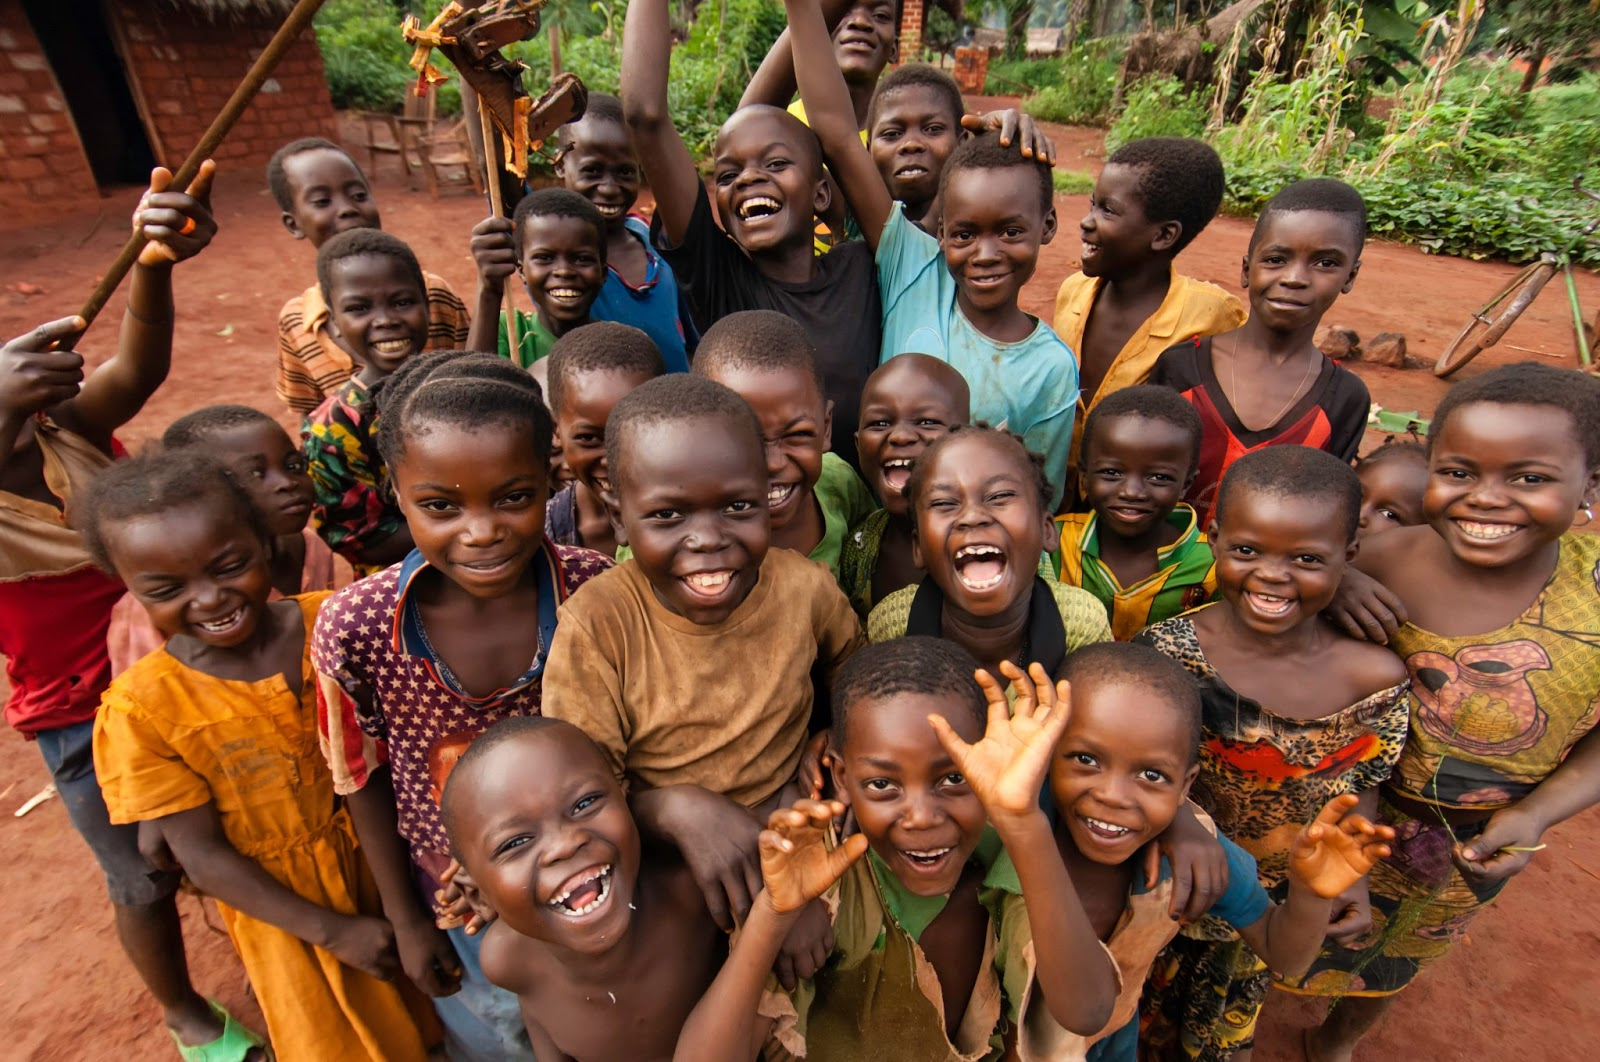 https://i1.wp.com/africa-facts.org/wp-content/uploads/2015/01/african-kids.jpg